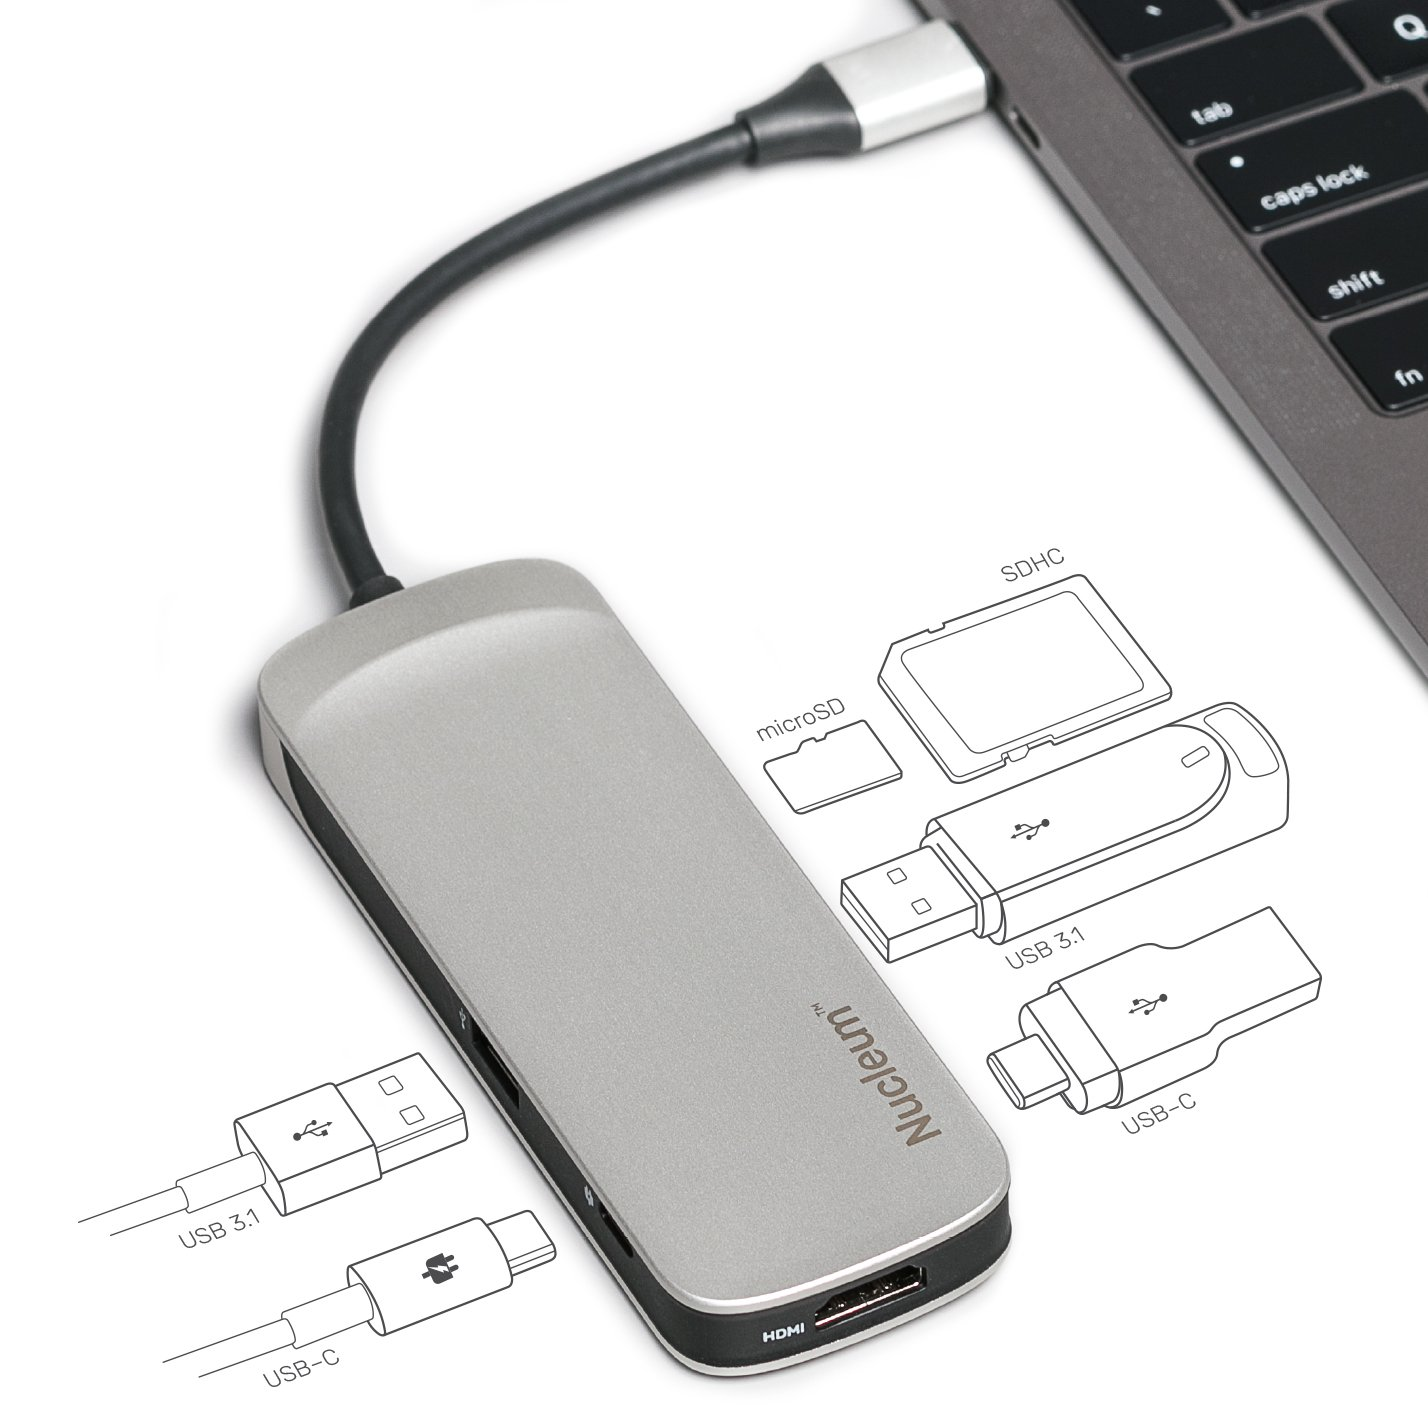 Kingston Nucleum USB C Hub, 7-in-1 Type-C Adapter Hub Connect USB 3.0, 4K HDMI, SD and MicroSD Card, USB Type-C Charging for MacBook, Chromebook, and Other USB Type-C Devices